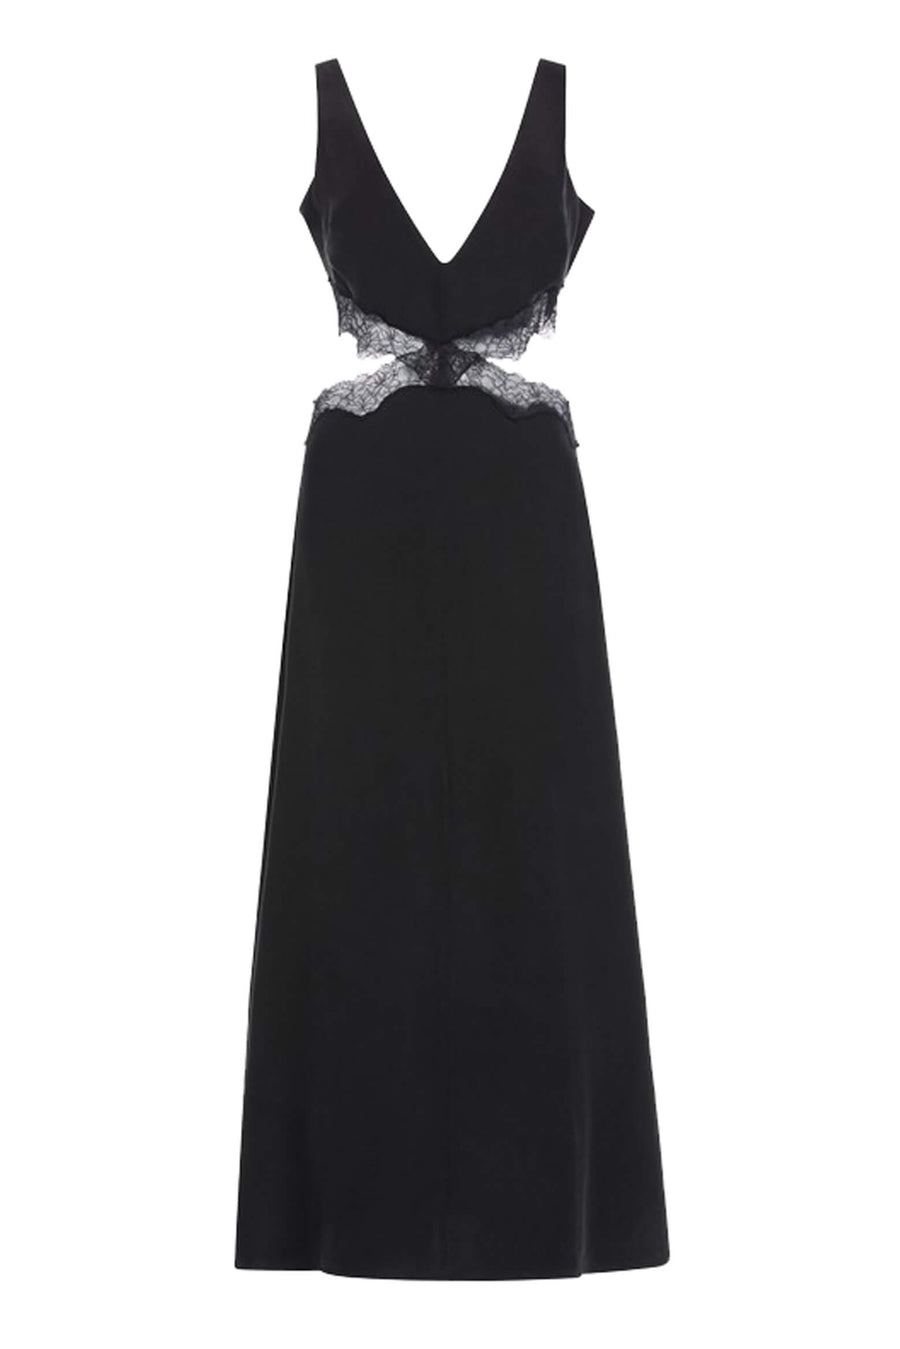 Sir The Label Alma Cut Out Dress in Black from The New Trend